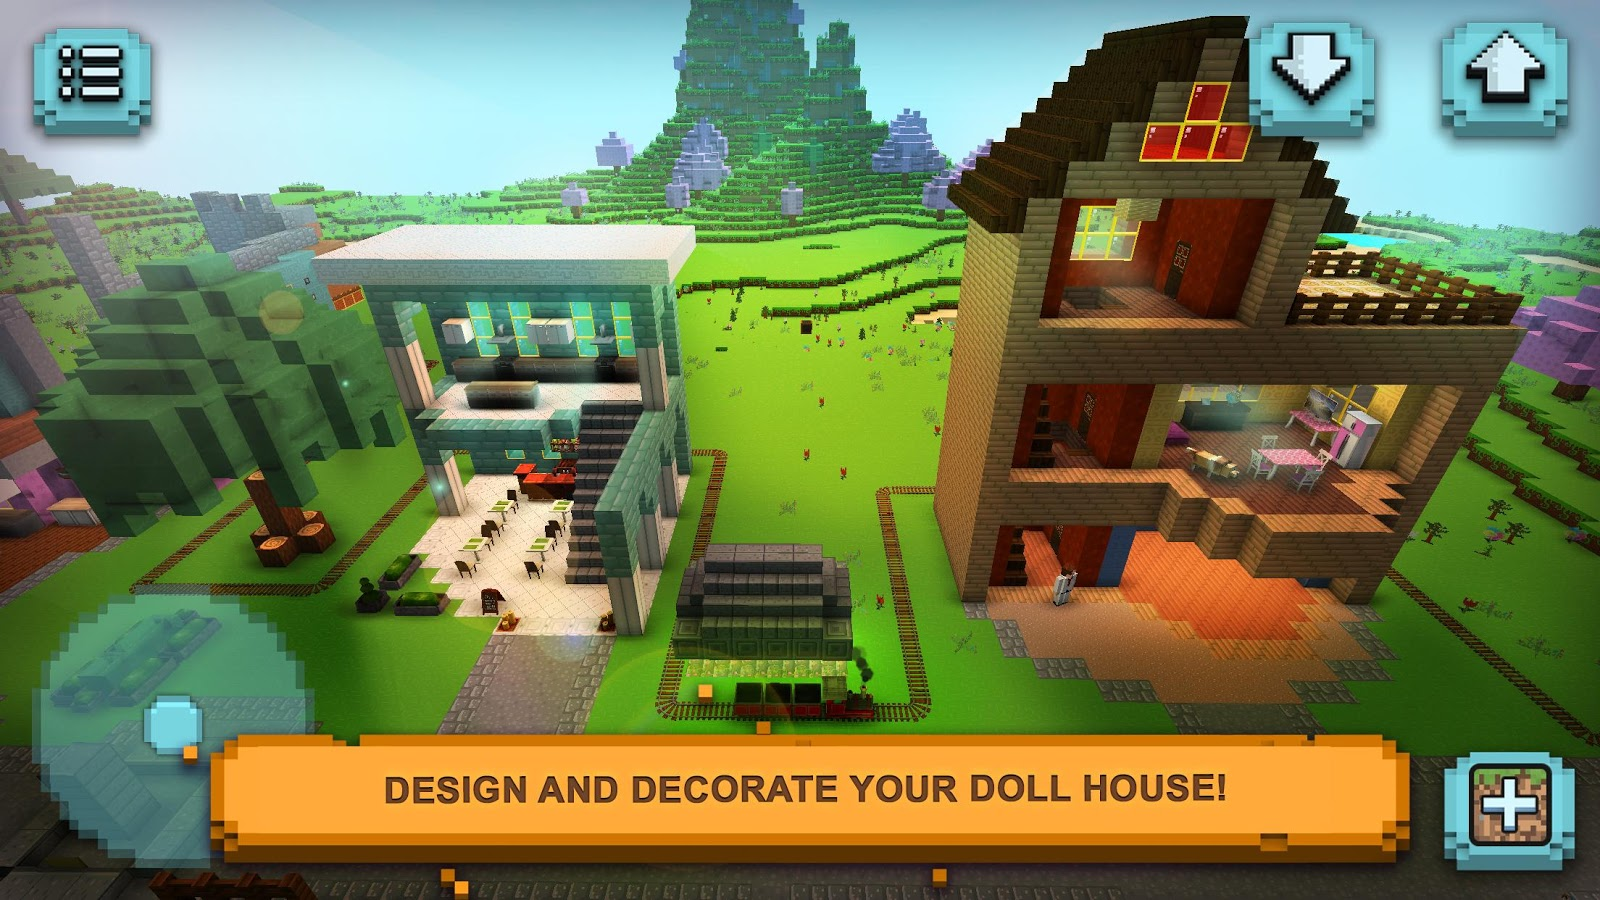 Dollhouse Craft 2 Girls Design Decoration Android Apps on